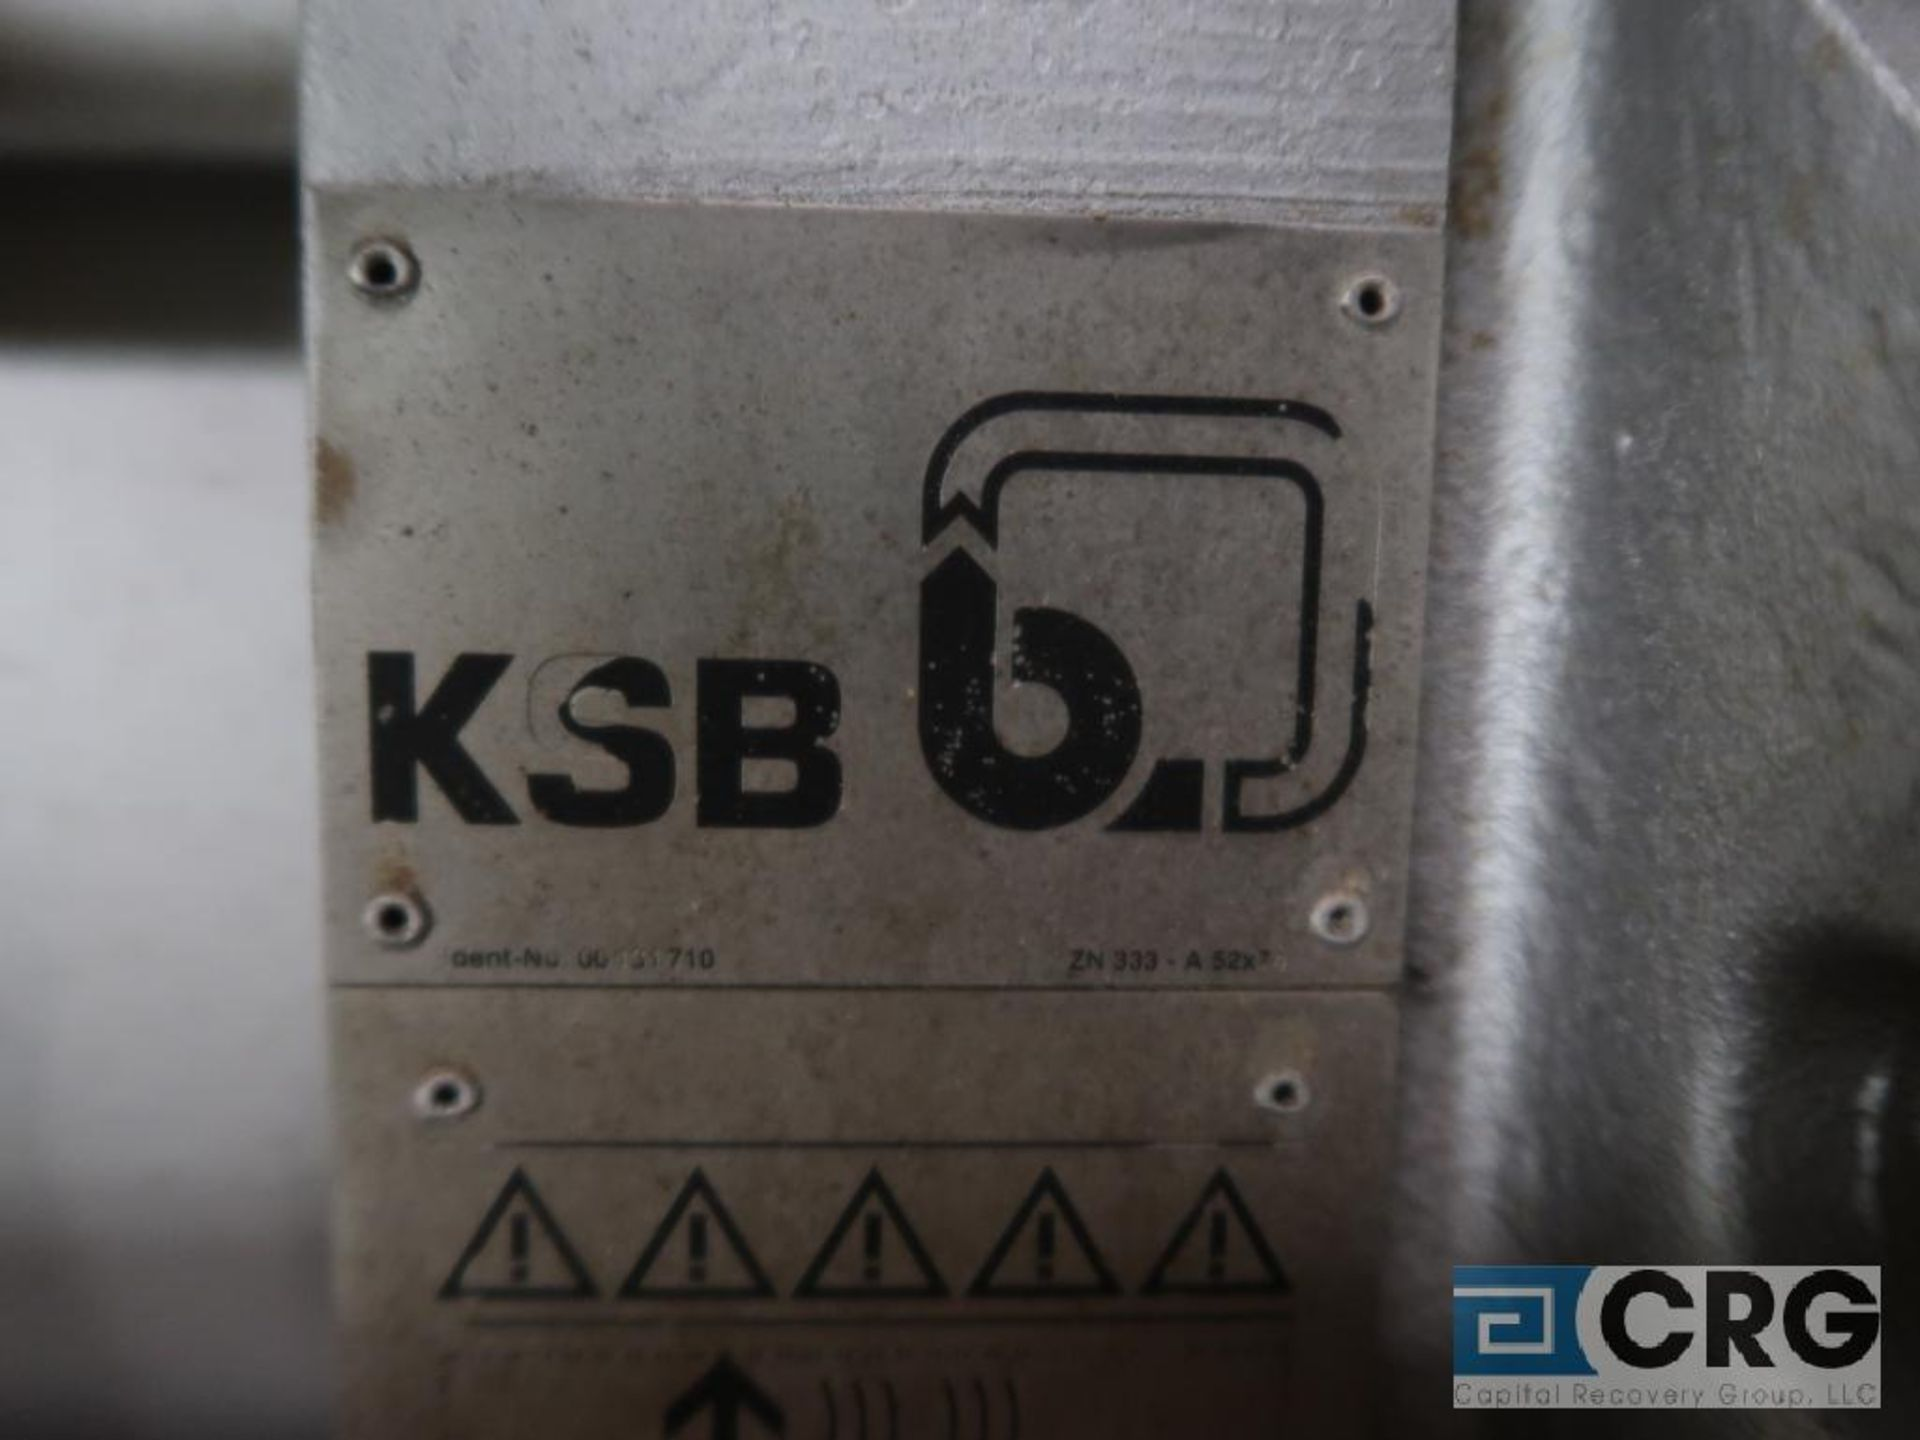 KSB H3M 3/5 feed water pump, 360 GPM (Basement Stores) - Image 2 of 5